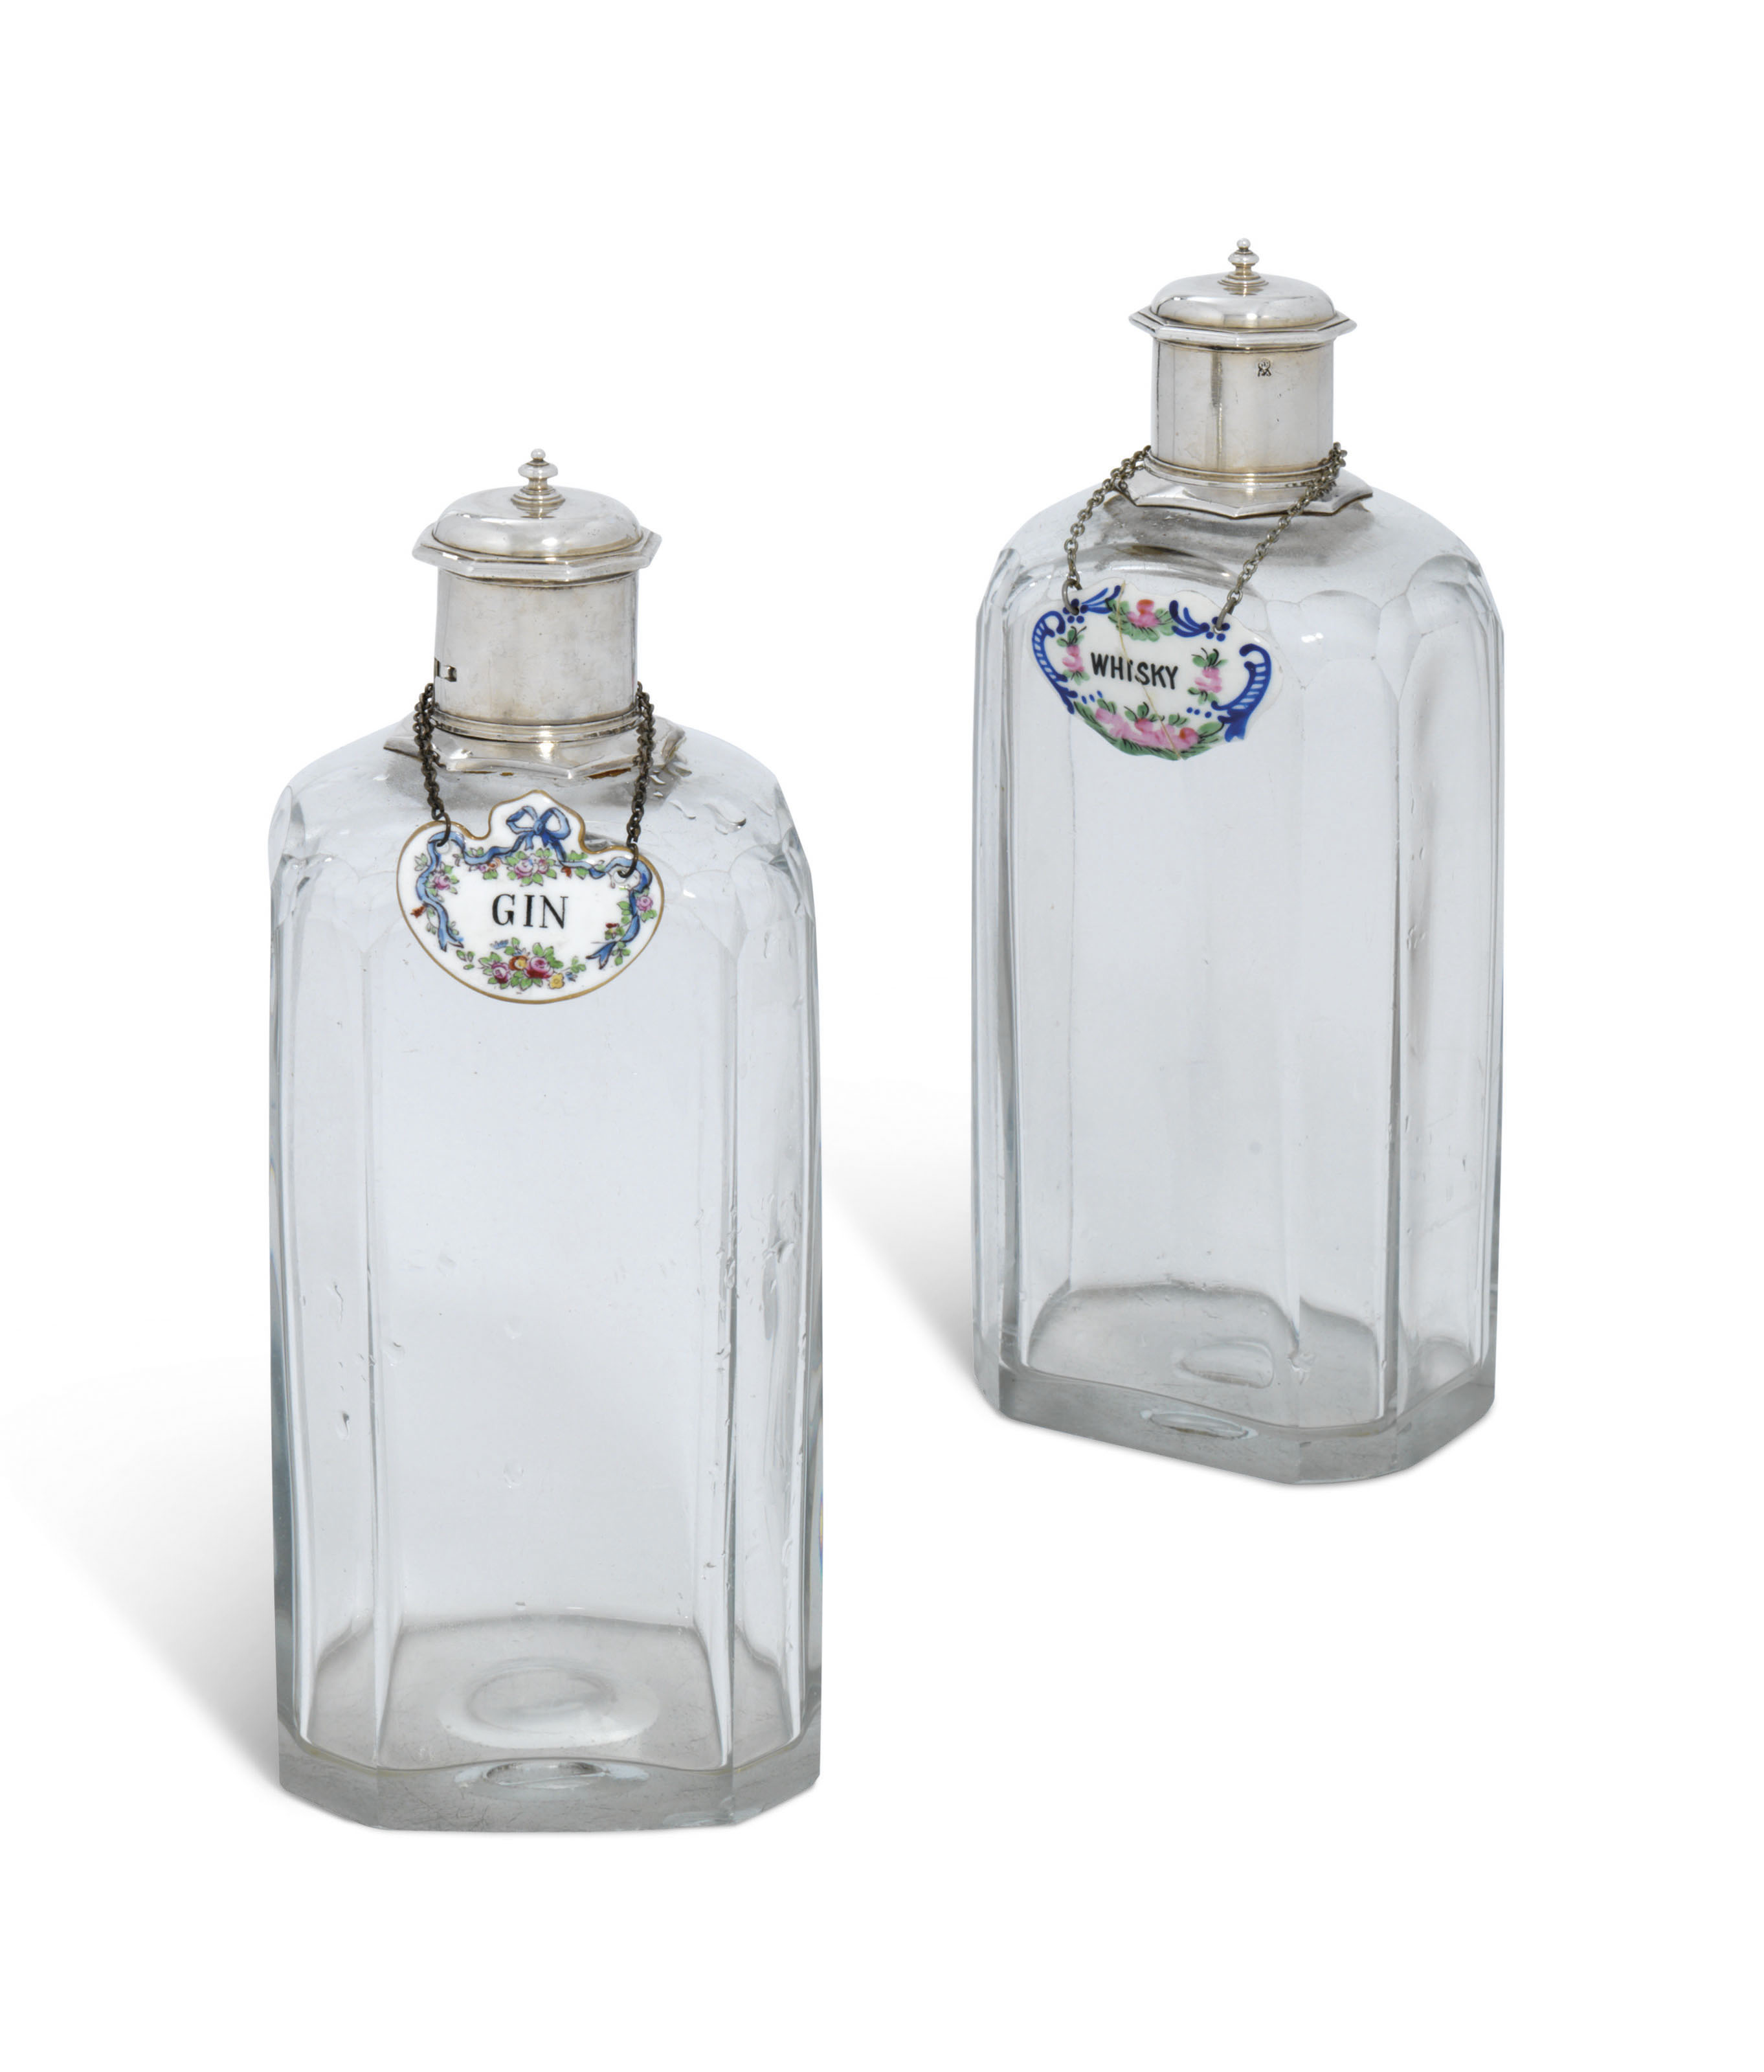 A PAIR OF SILVER-MOUNTED GLASS DECANTERS